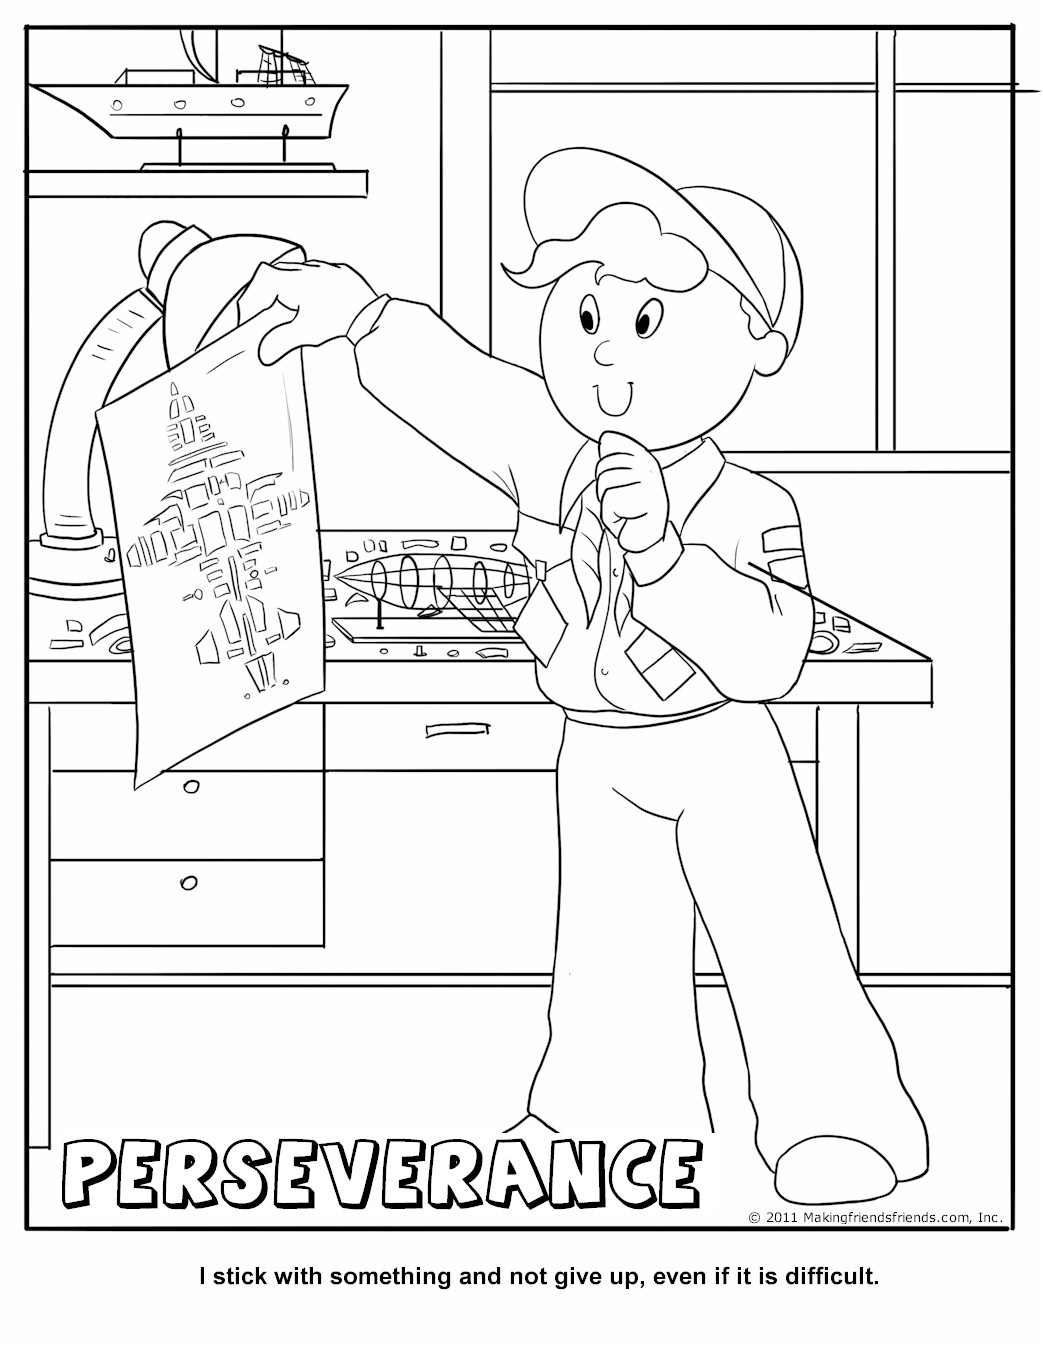 Club With A Cub Coloring Page Coloring Pages Cub Scouts Coloring Pages